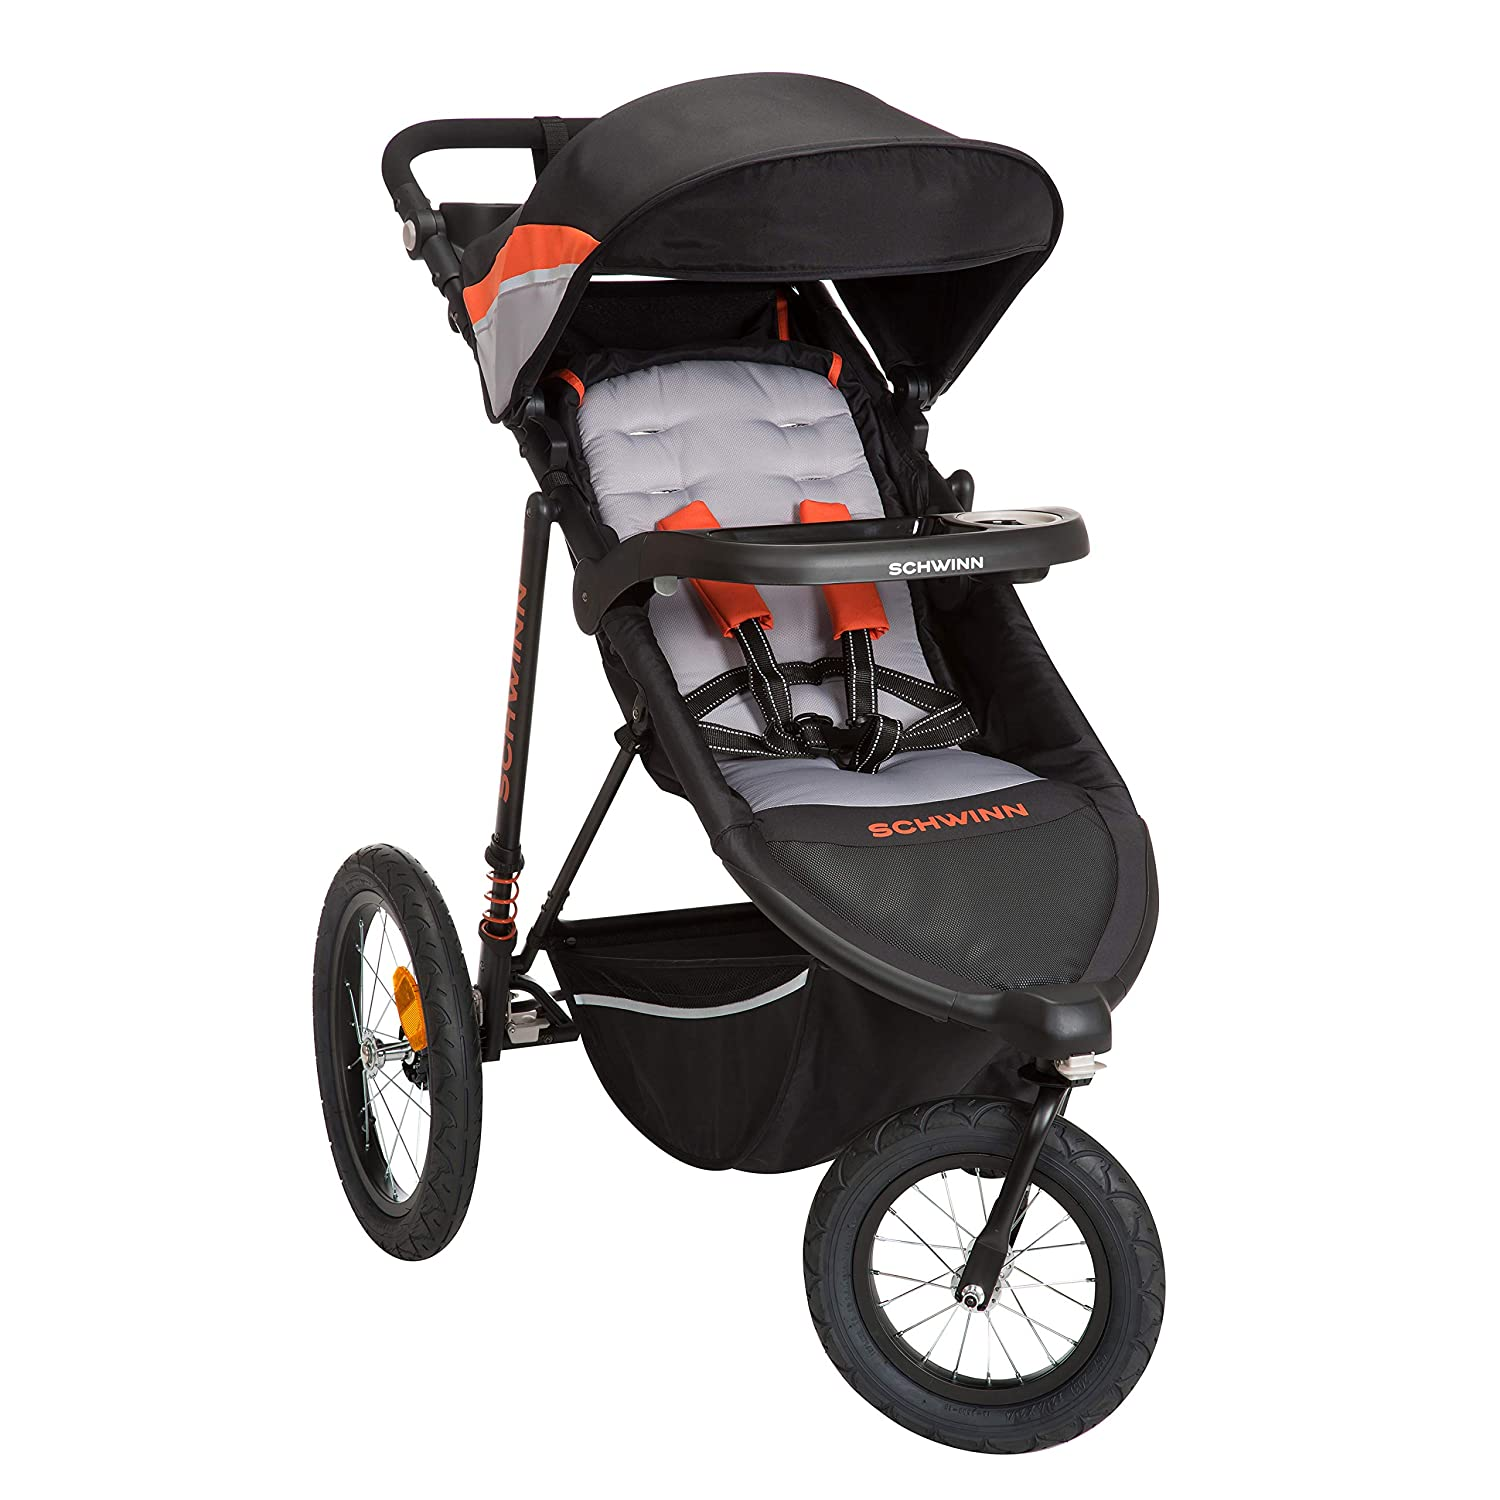 Schwinn Interval 2-in-1 Jogging Stroller with Locking Front Wheel (Oriole)